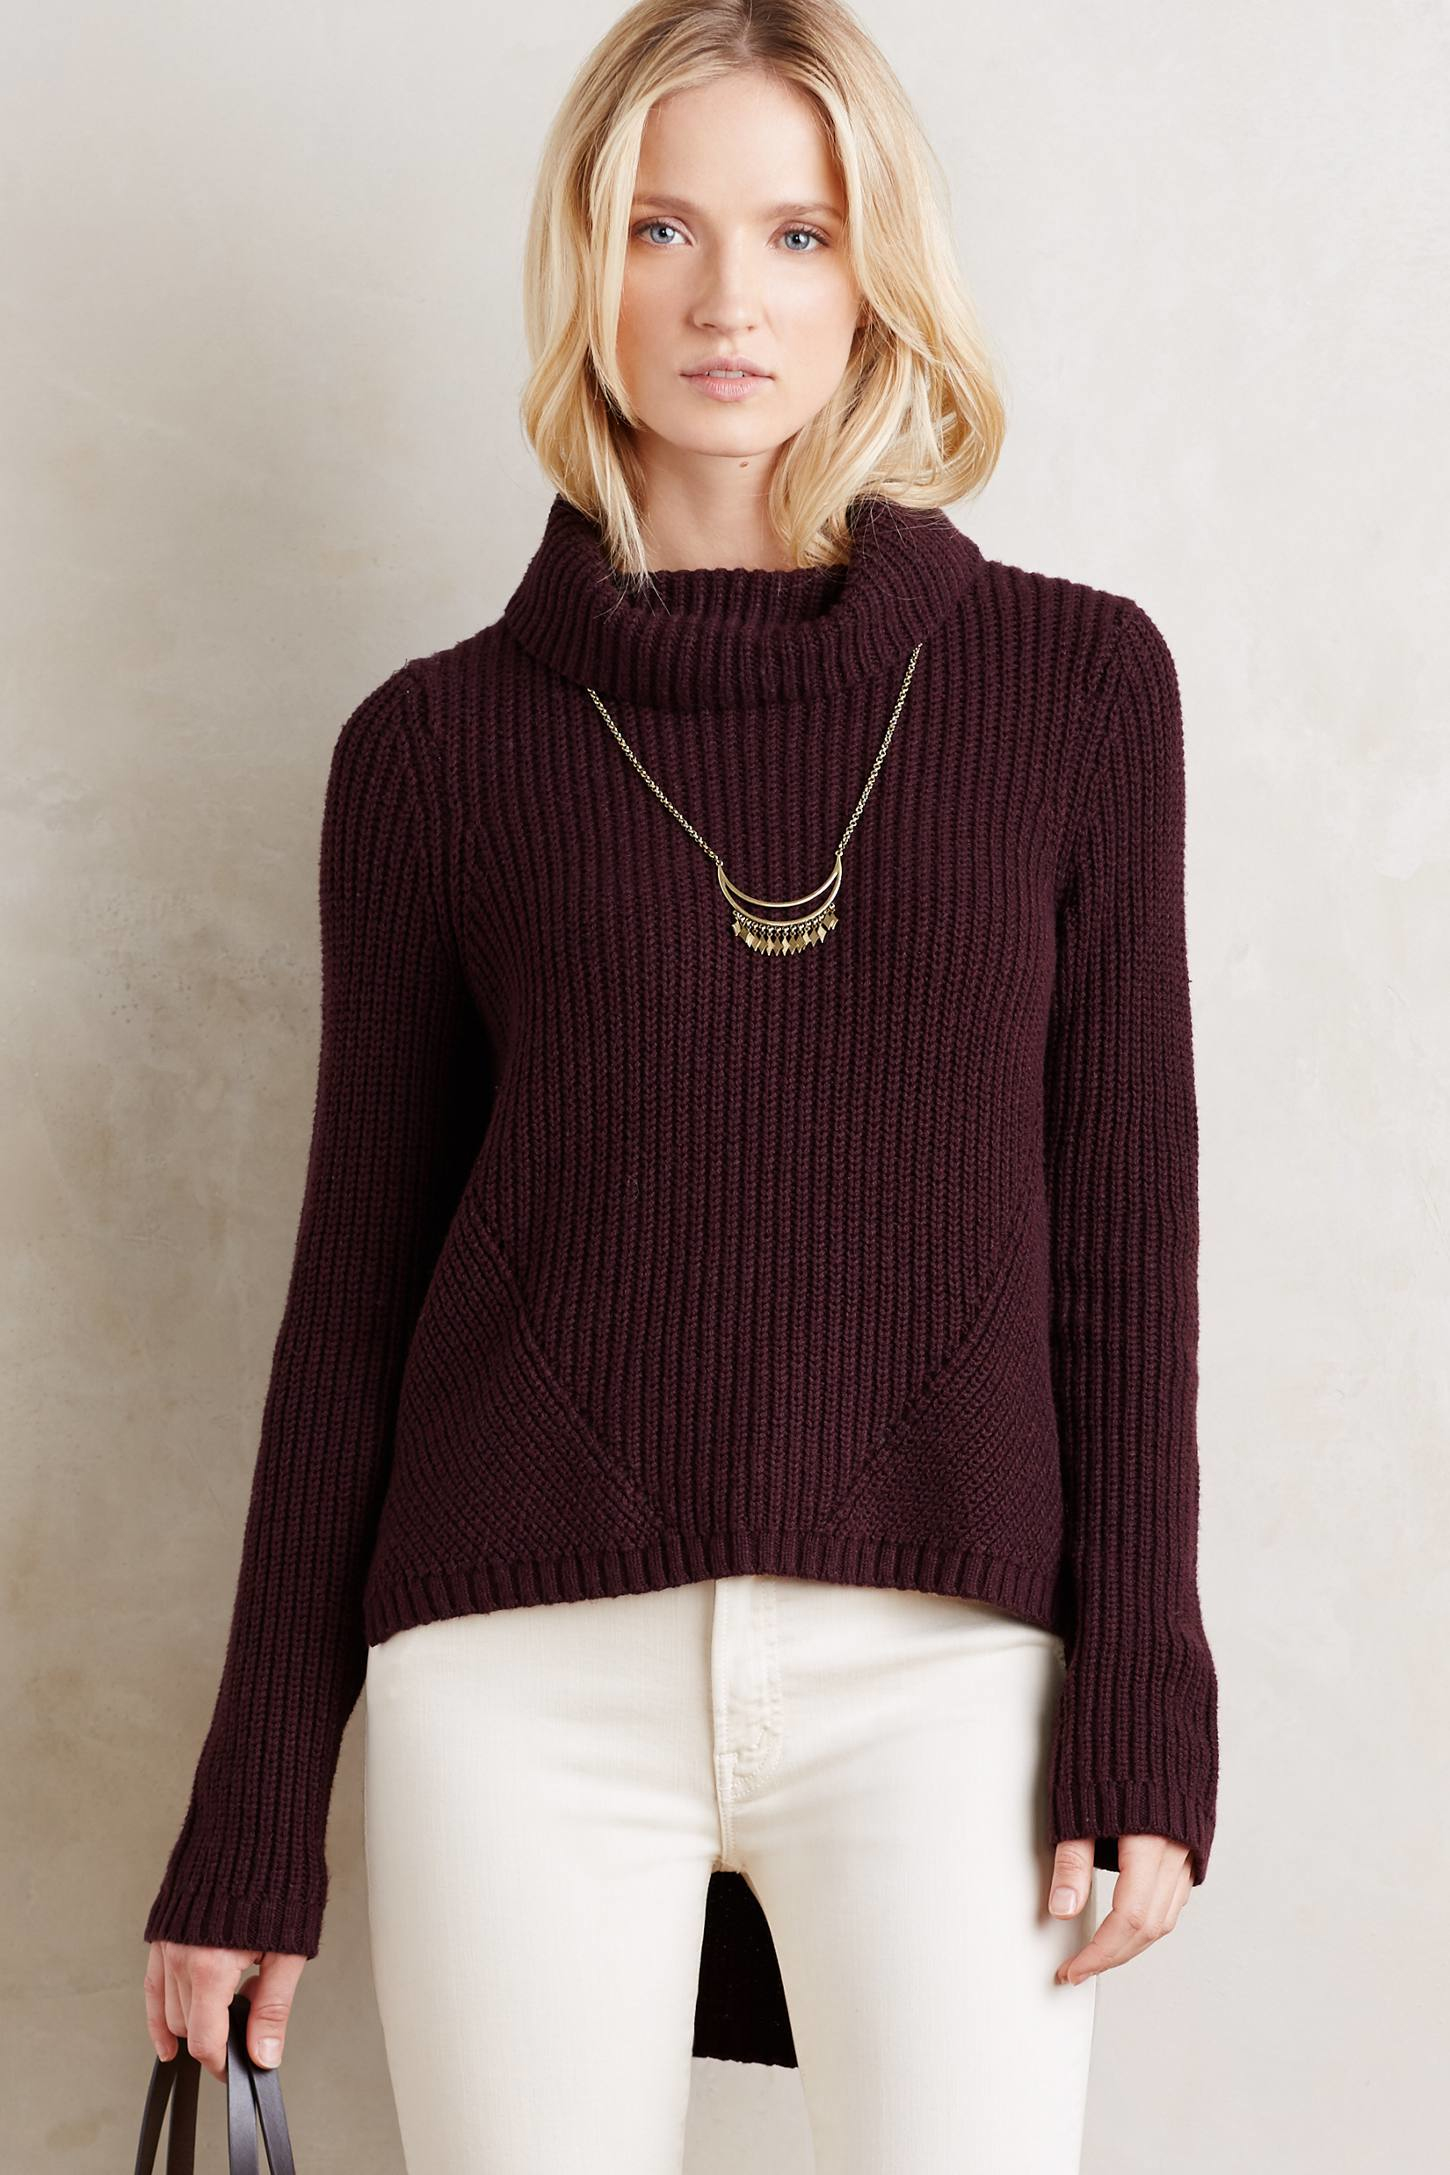 Honeycomb Knit Sweater